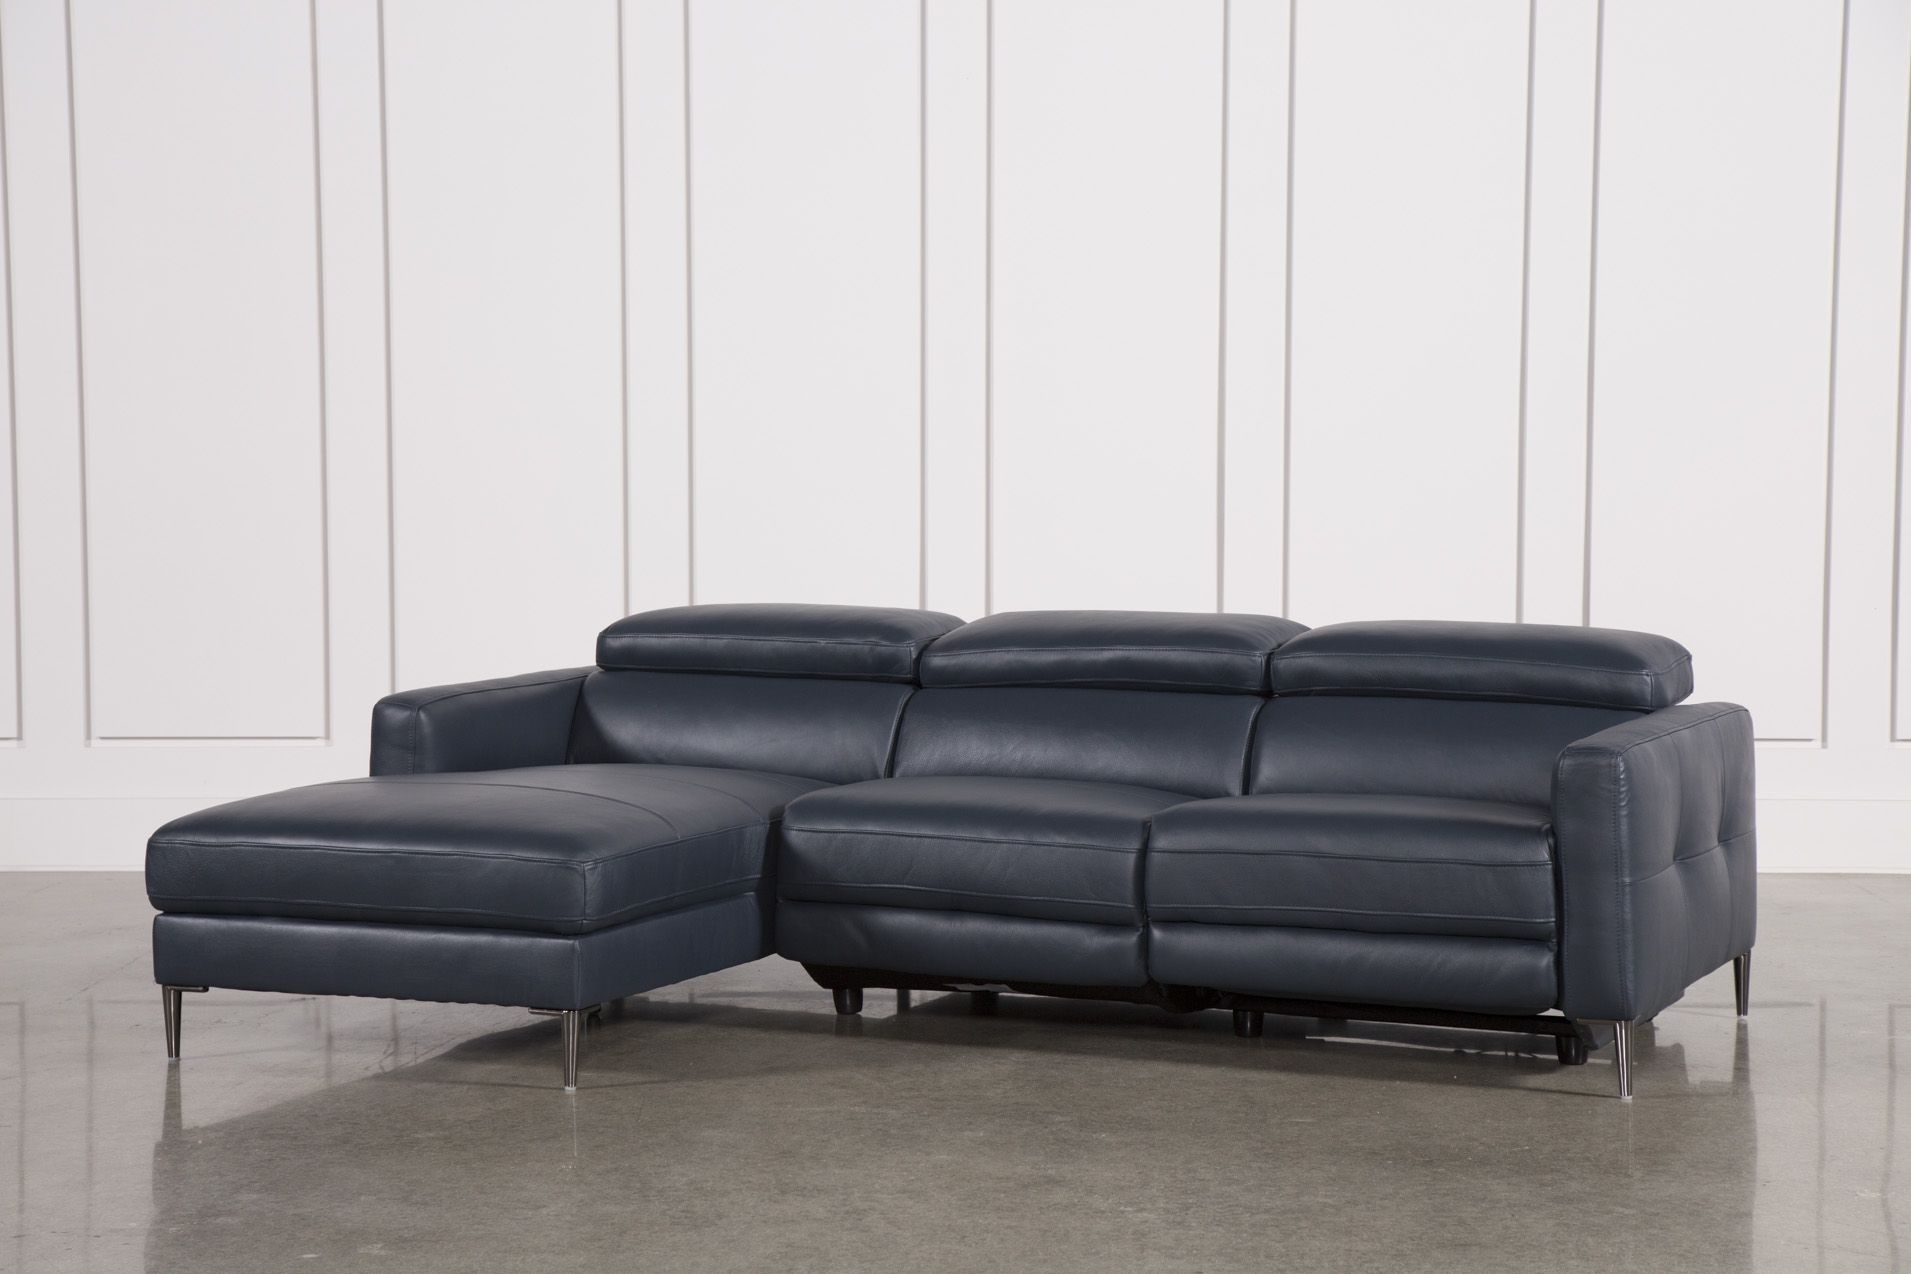 Tara Blue 2 Piece Left Facing Chaise Sofa | Products | Pinterest in Tenny Dark Grey 2 Piece Left Facing Chaise Sectionals With 2 Headrest (Image 27 of 30)